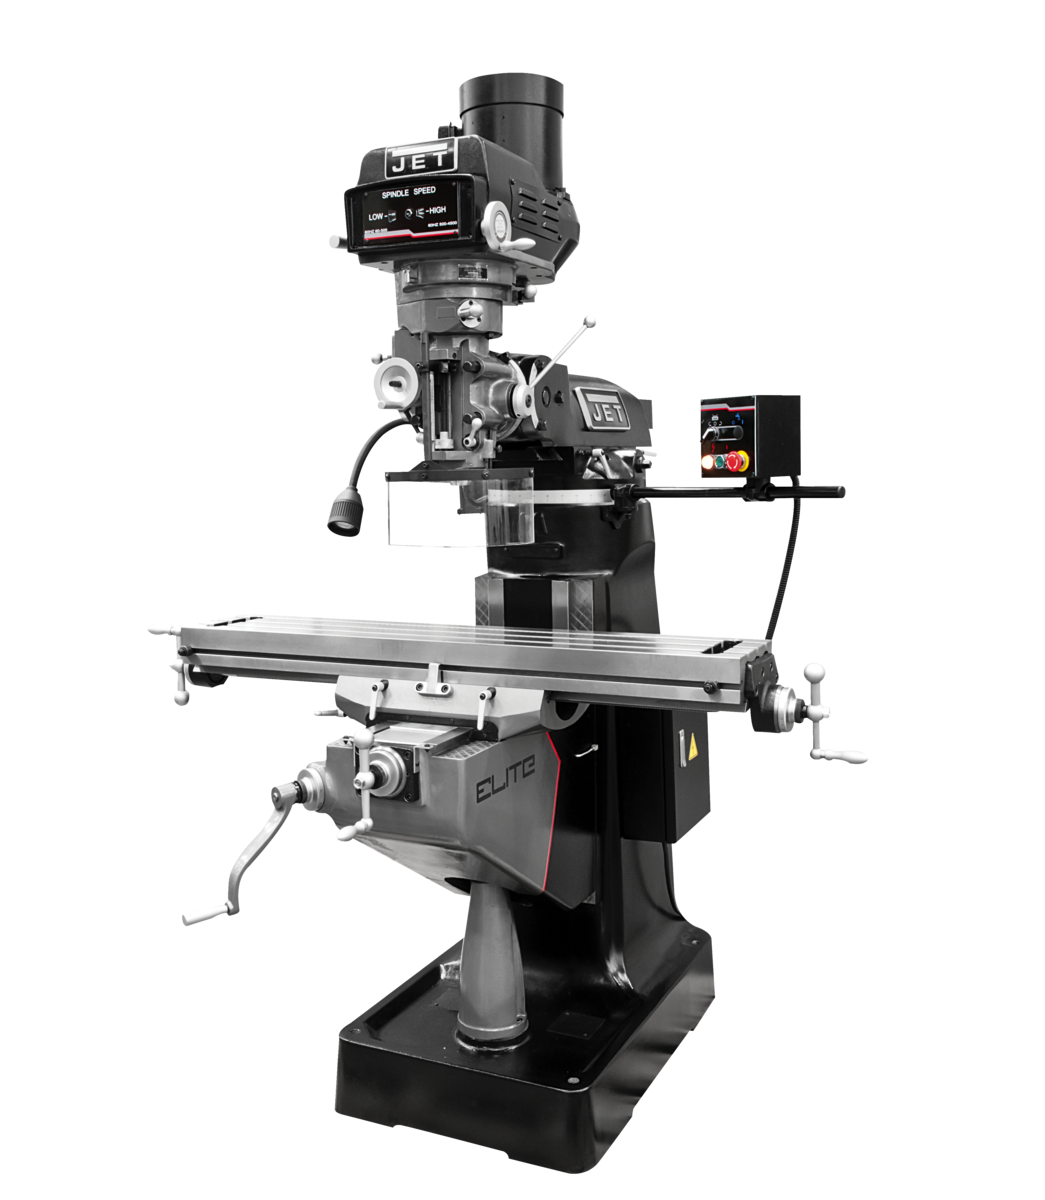 ETM-949 Mill with 3-Axis ACU-RITE 303 (Knee) DRO and X, Y-Axis JET Powerfeeds and USA Made Air Draw Bar